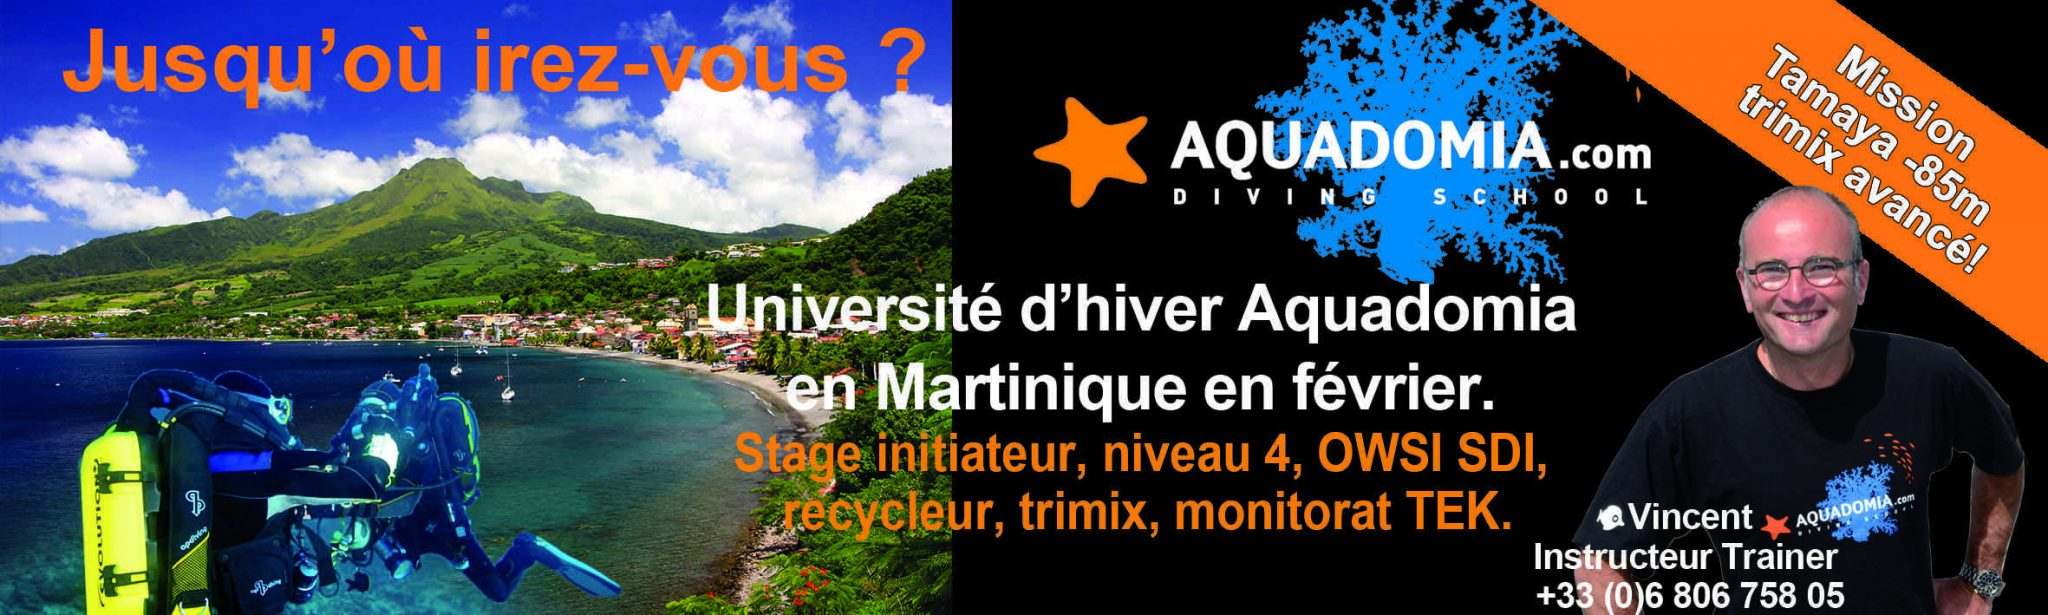 Université d'hiver Aquadomia - Mission Tamaya -